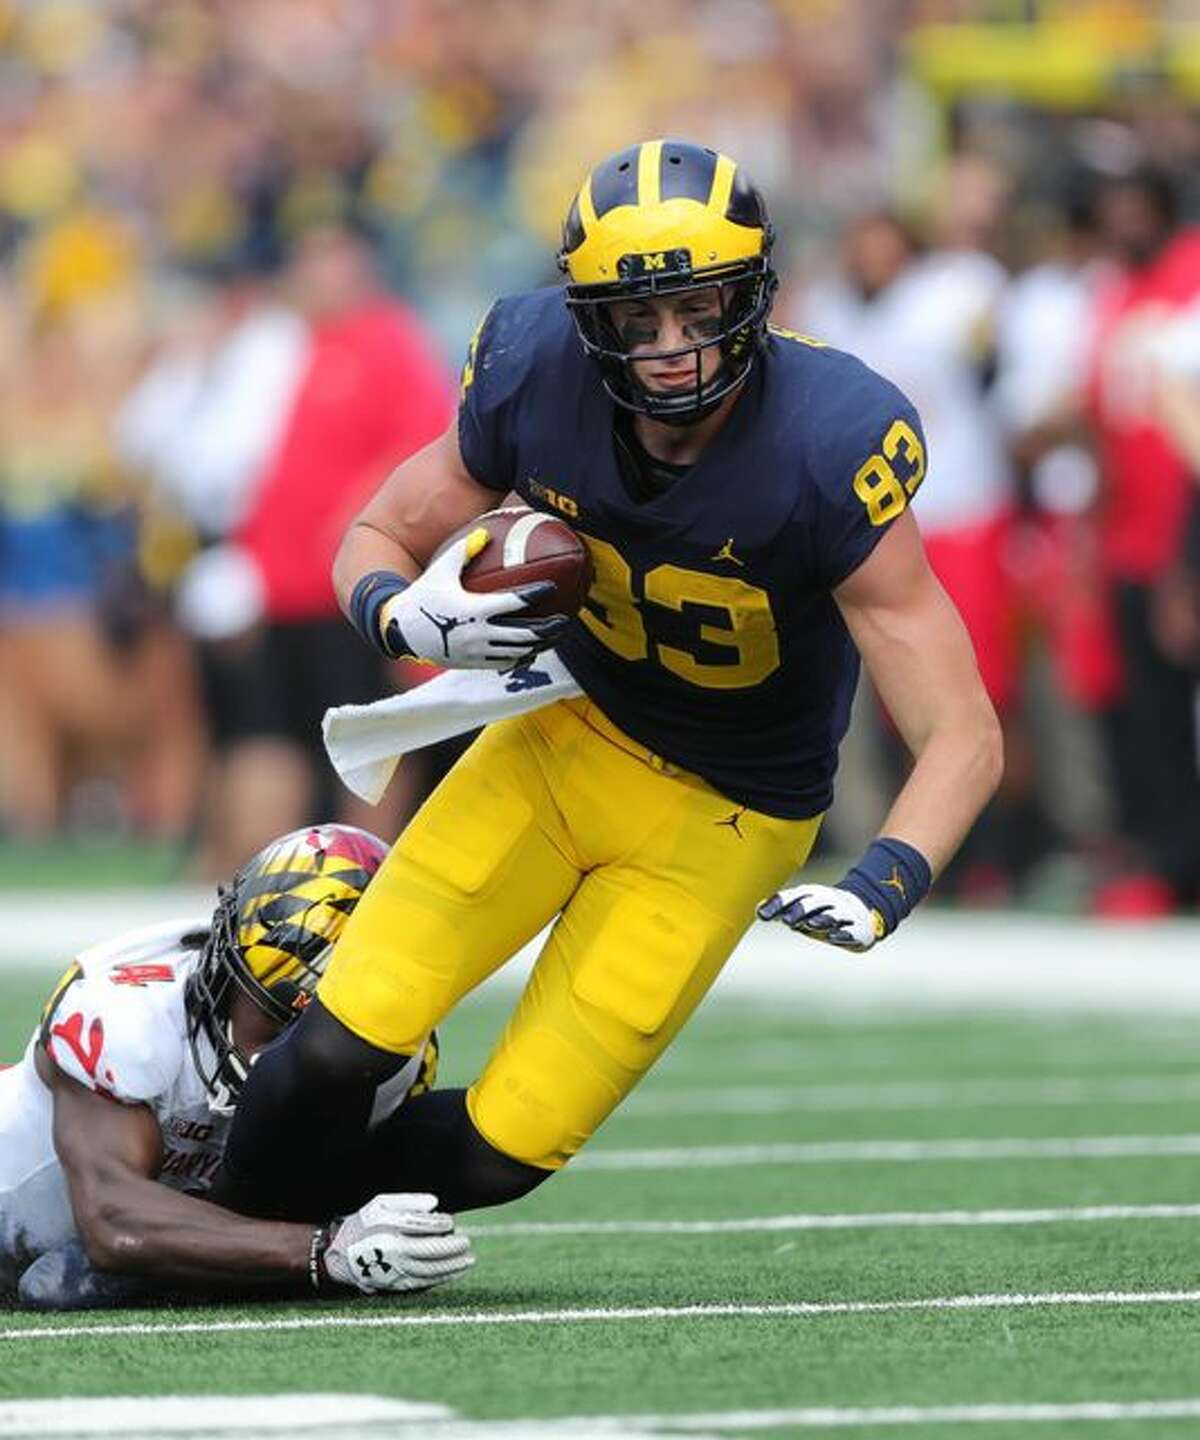 Michigan's Zach Gentry is tackled by Maryland's Darnell Savage Jr. during the first half Saturday. (Photo: Kirthmon F. Dozier, Detroit Free Press)